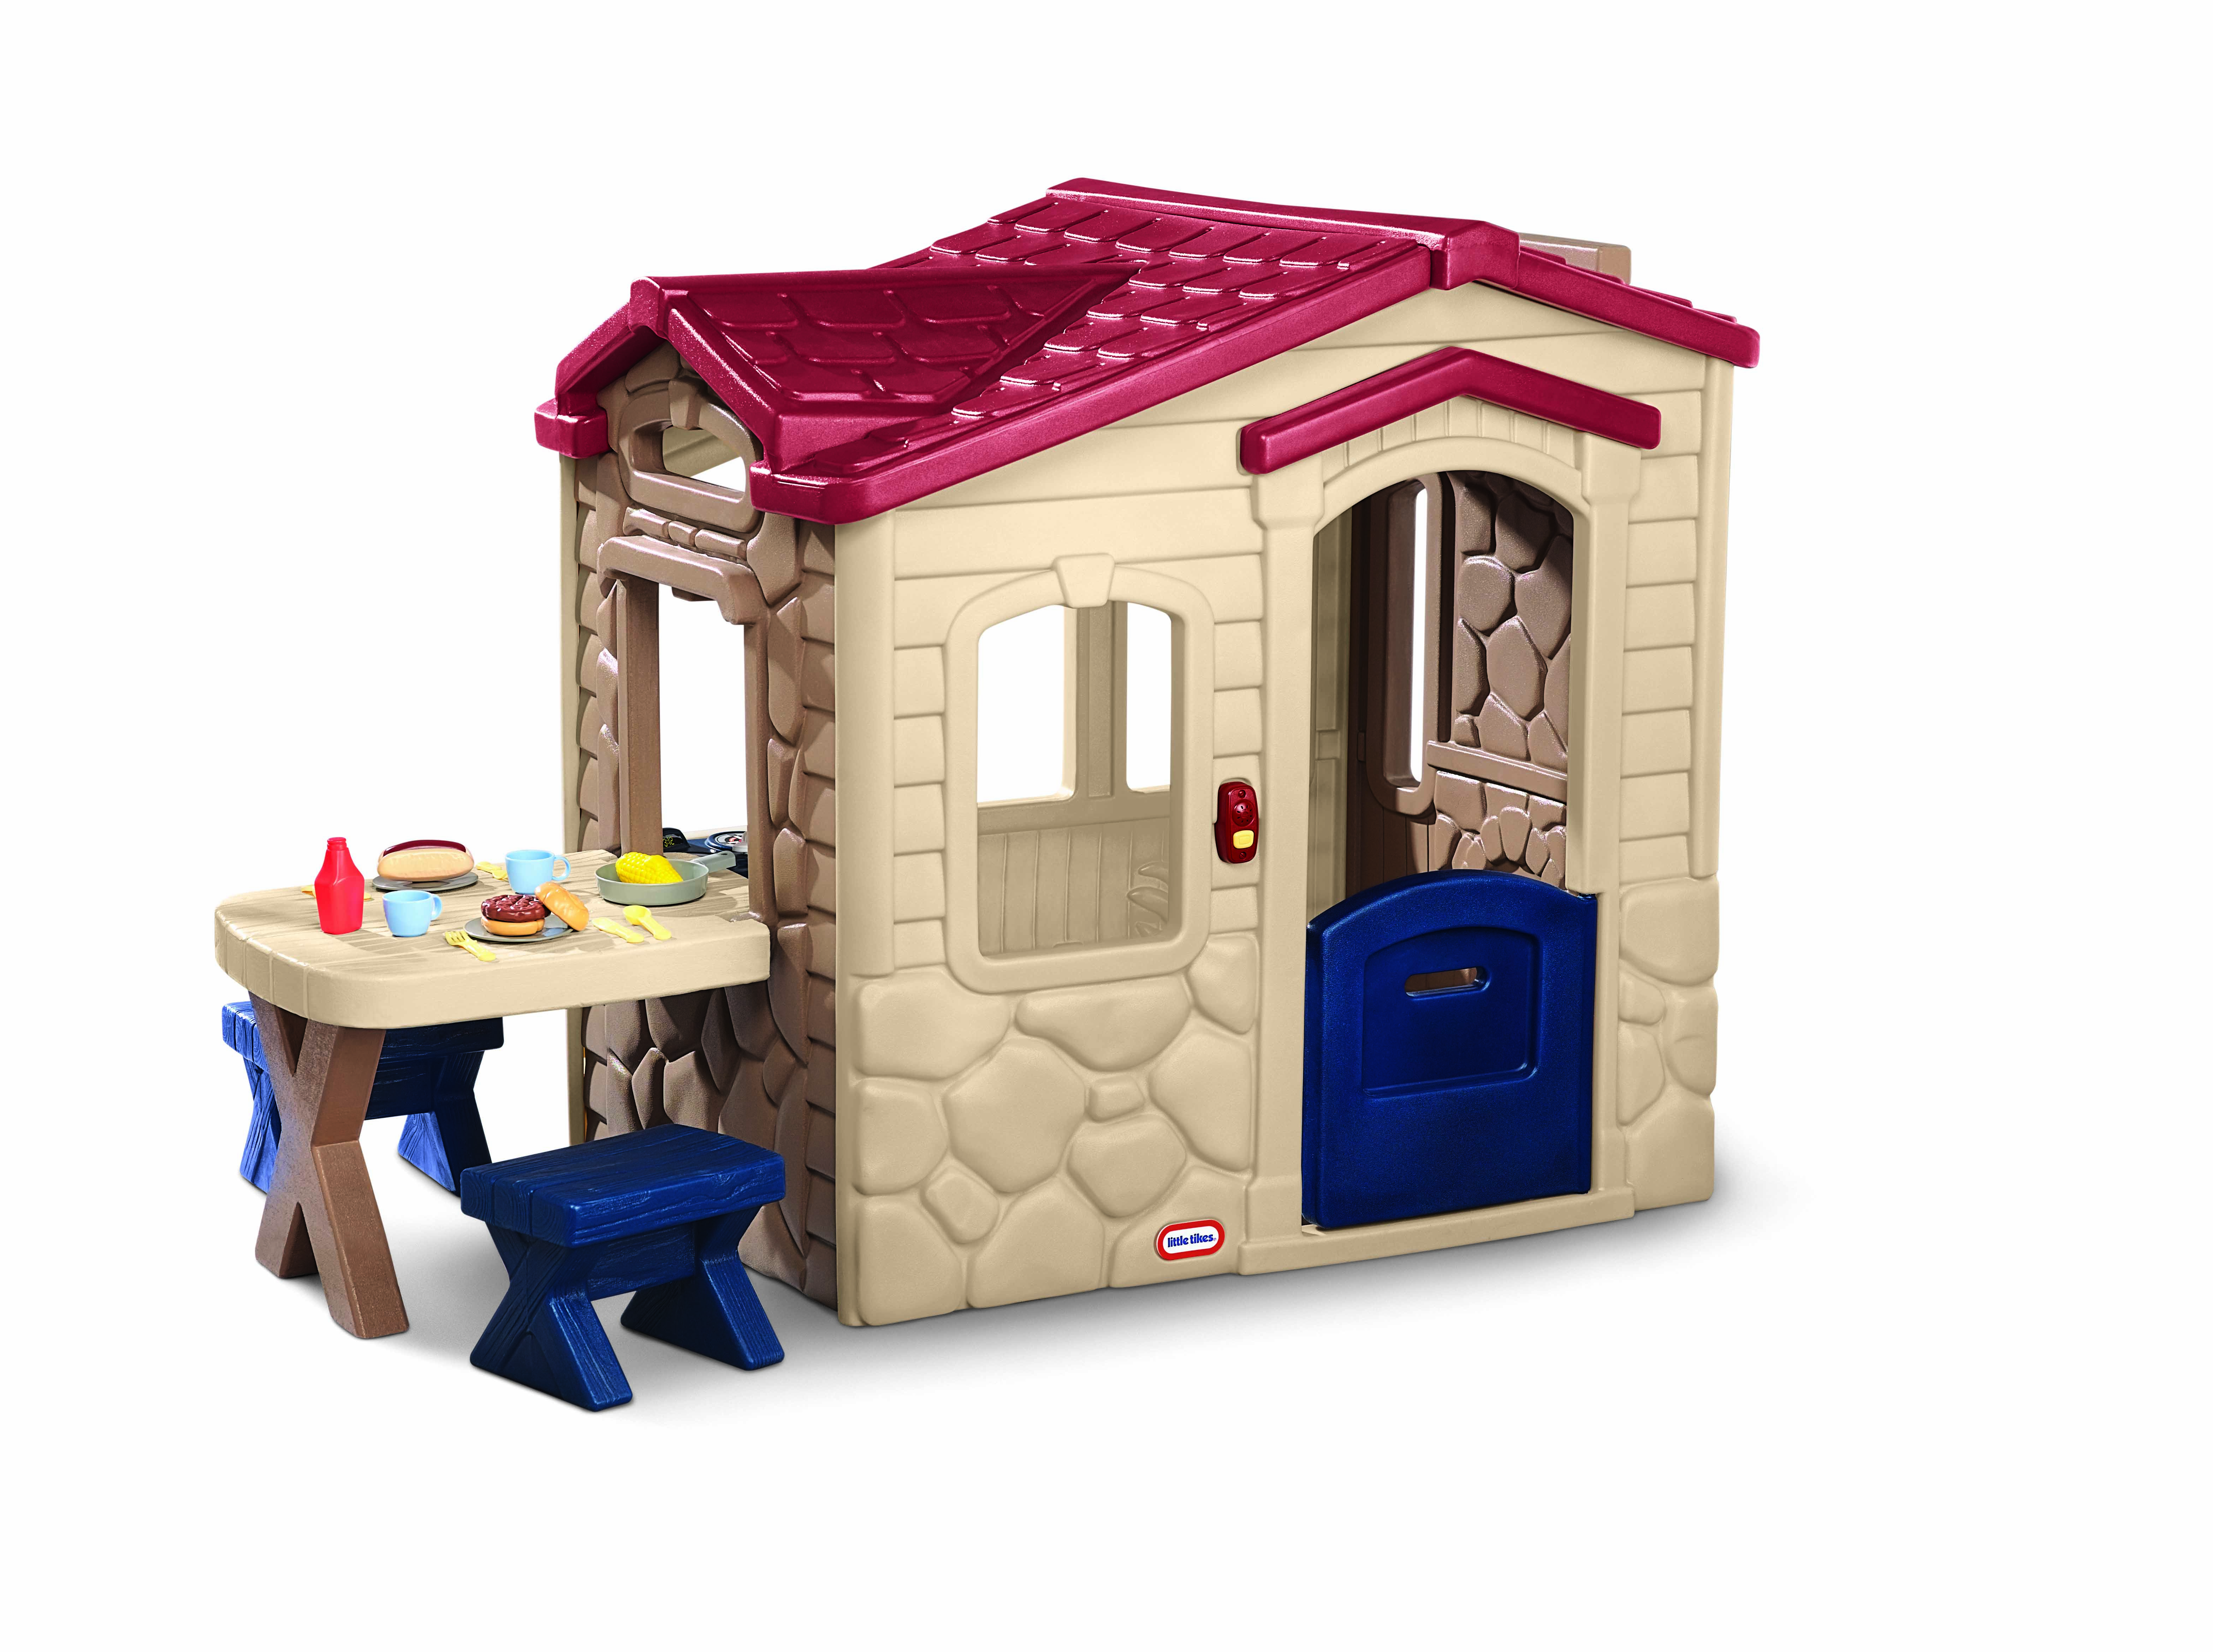 Delightful Little Tikes Picnic On The Patio Playhouse Image 3 Of 3